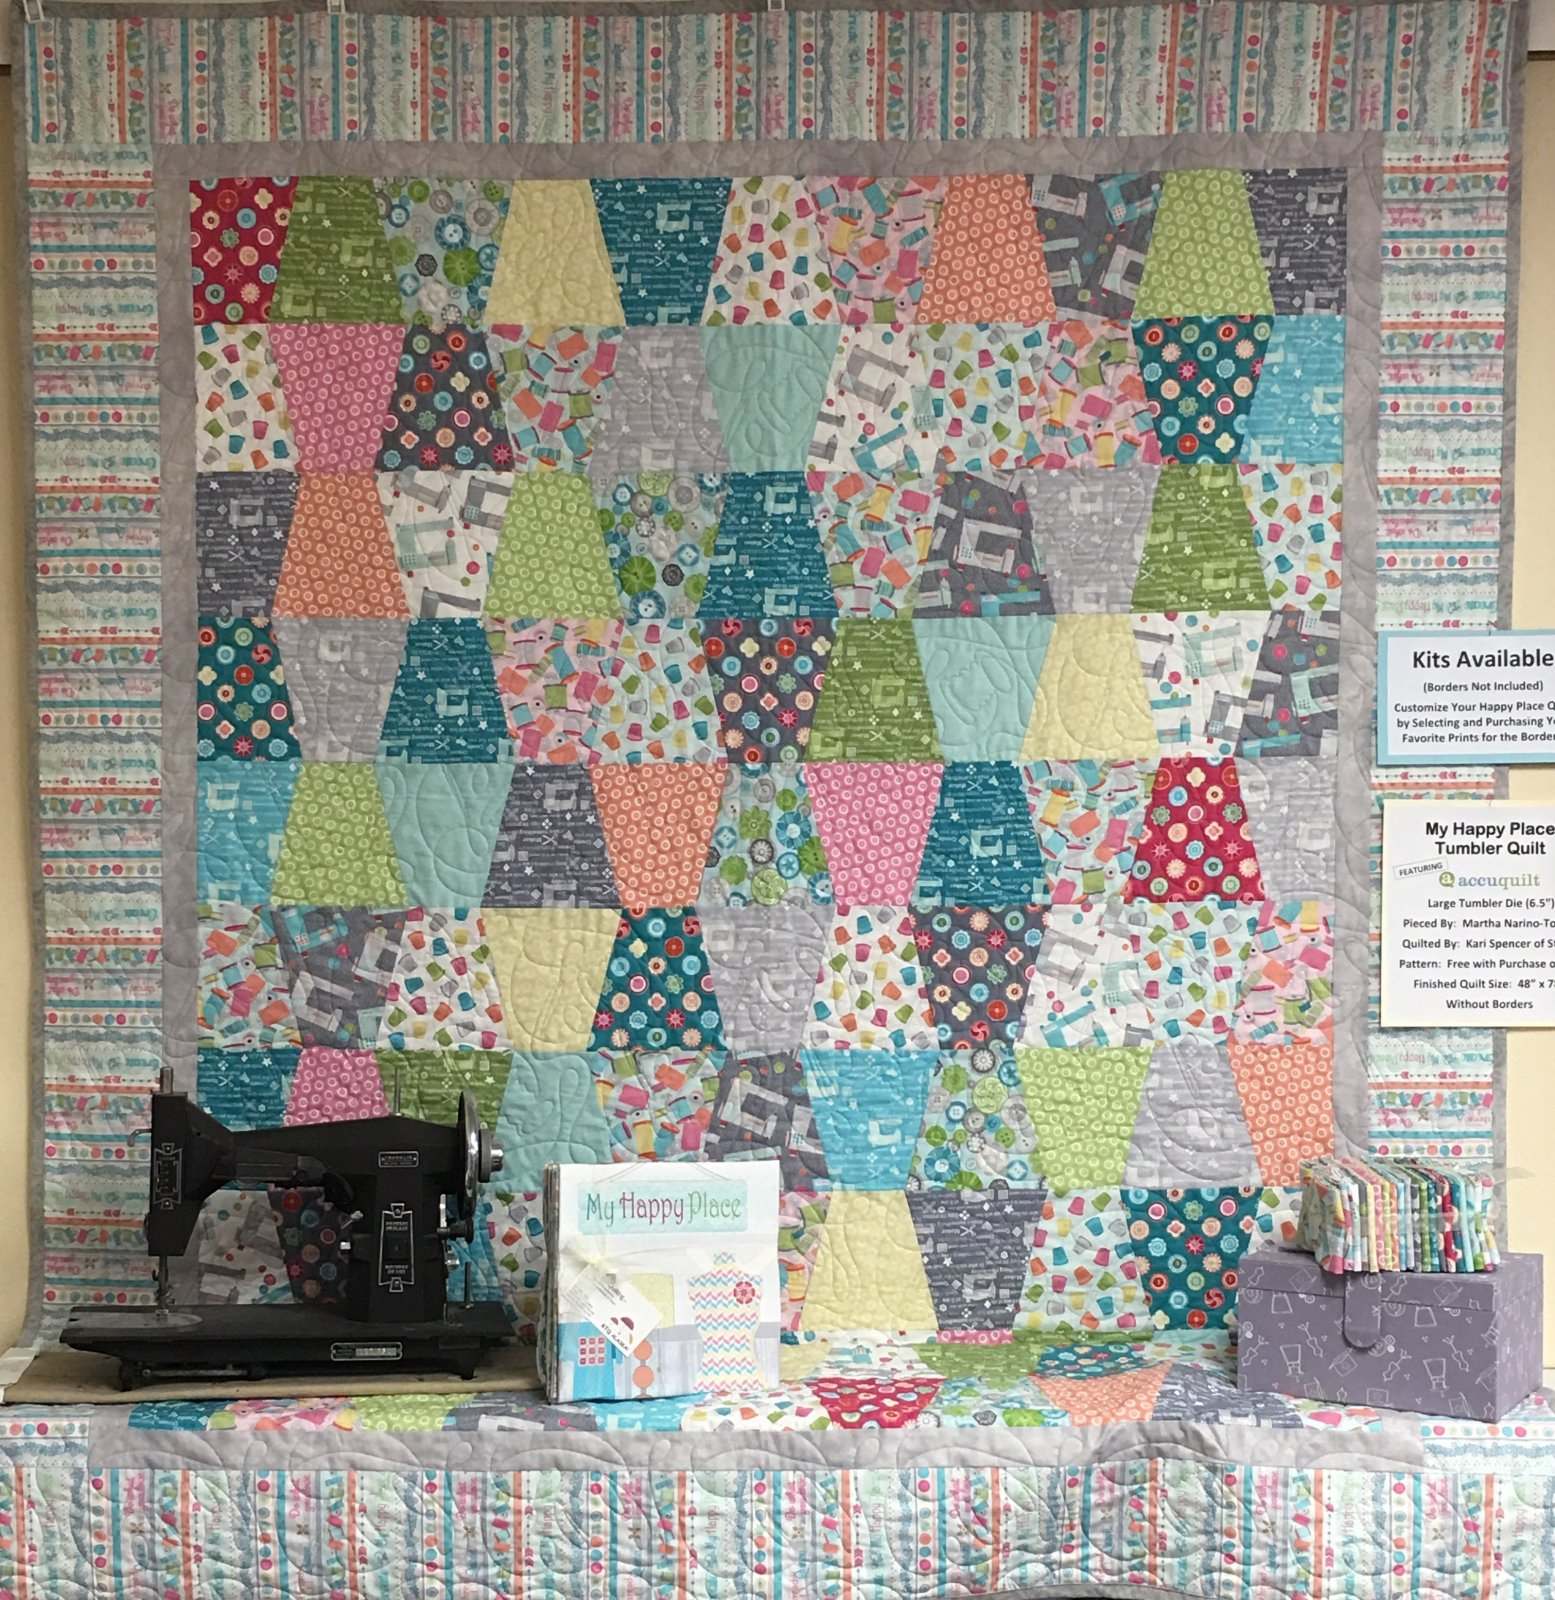 Sew Happy Lg Tumbler Quilt Kit